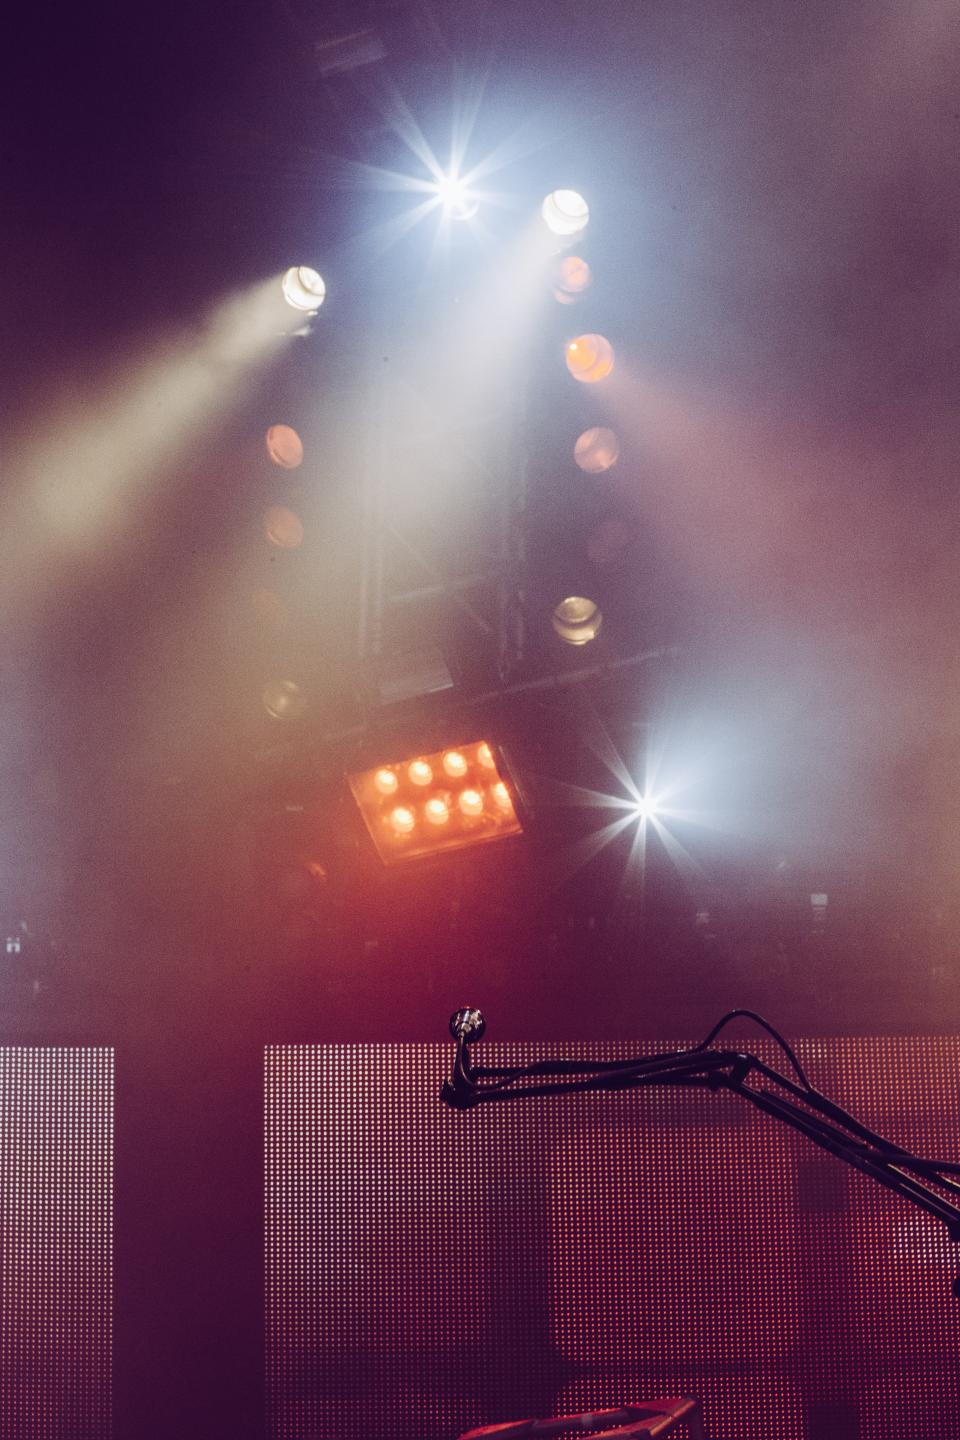 microphone music concert stage spotlight night lighting